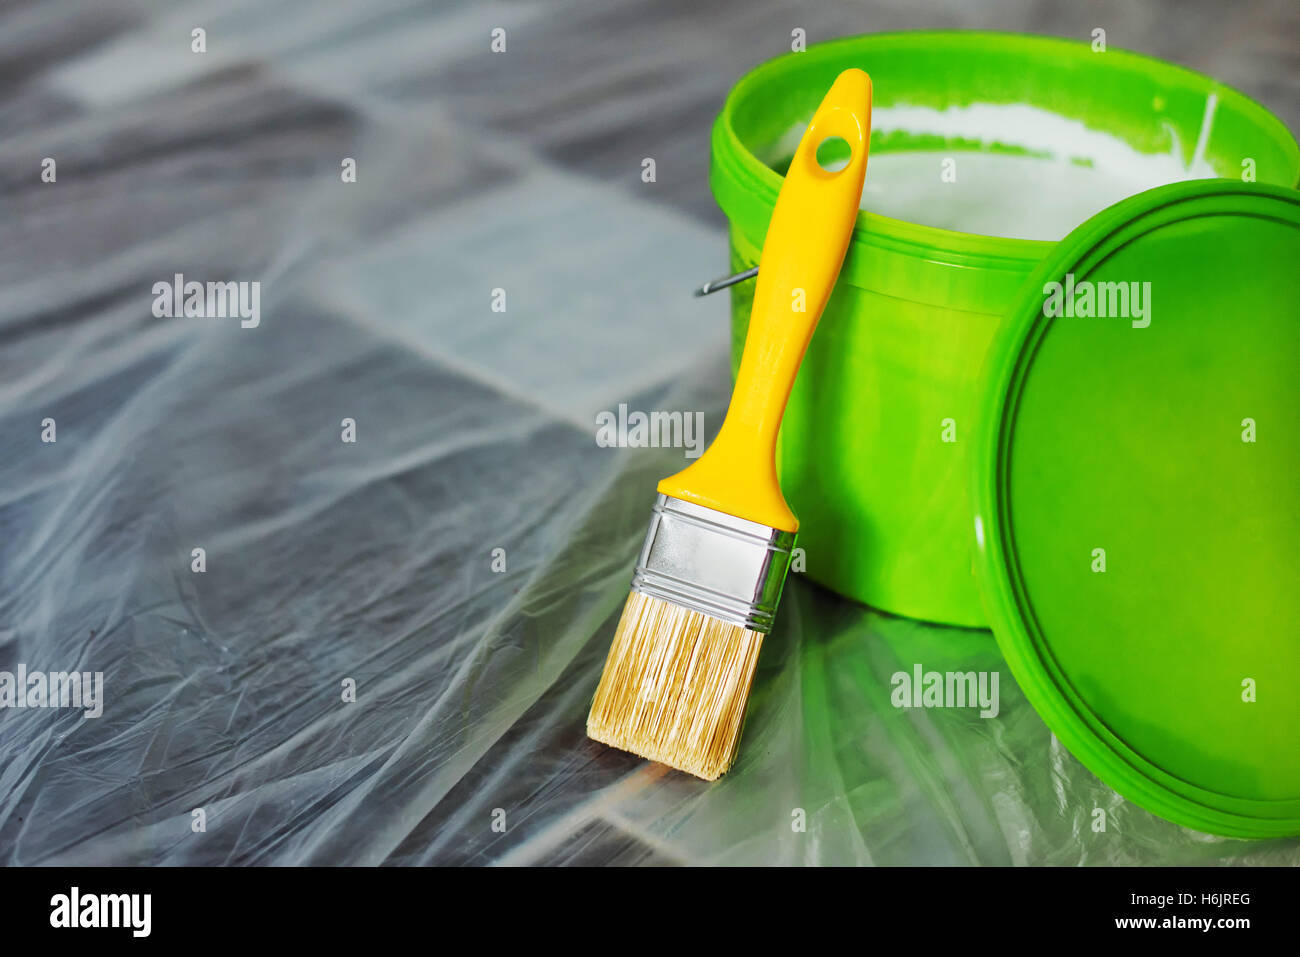 Yellow paint brush and green bucket on the floor, ready for housework project and walls redecoration - Stock Image